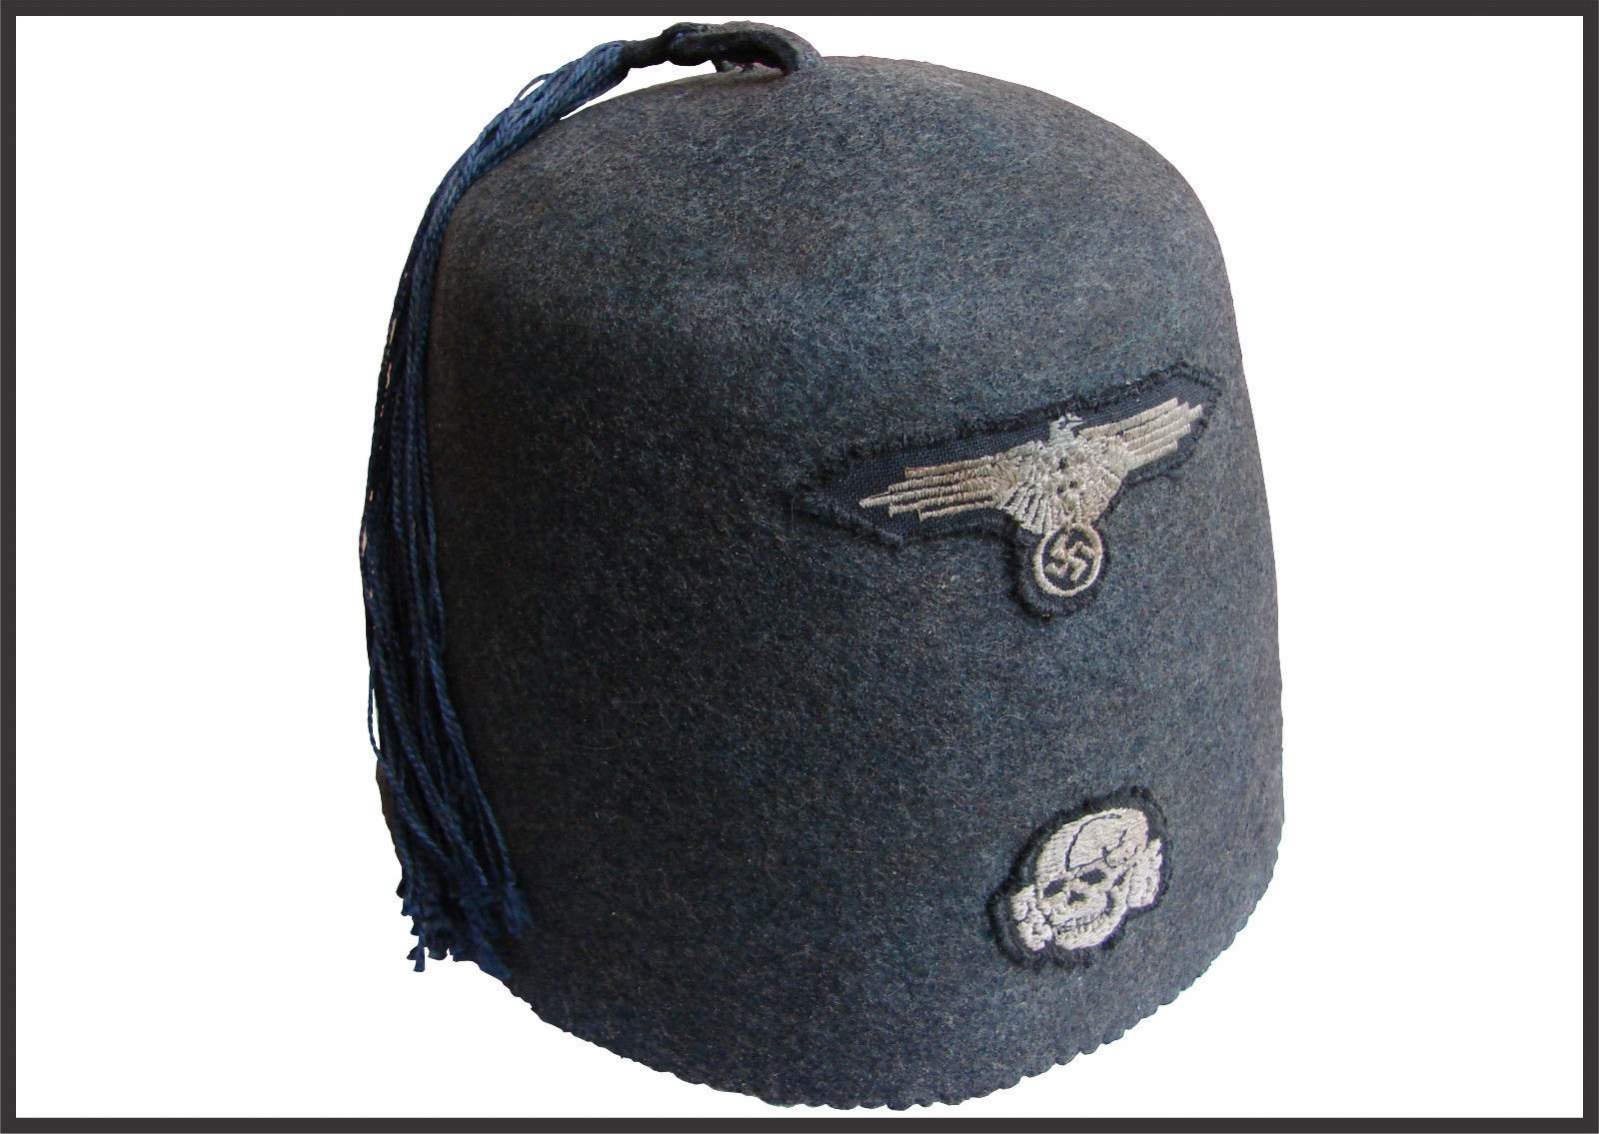 SALE WWII Handschar Division Fez 13th Waffen SS 13th division German  extremely rare 84f60167c2a